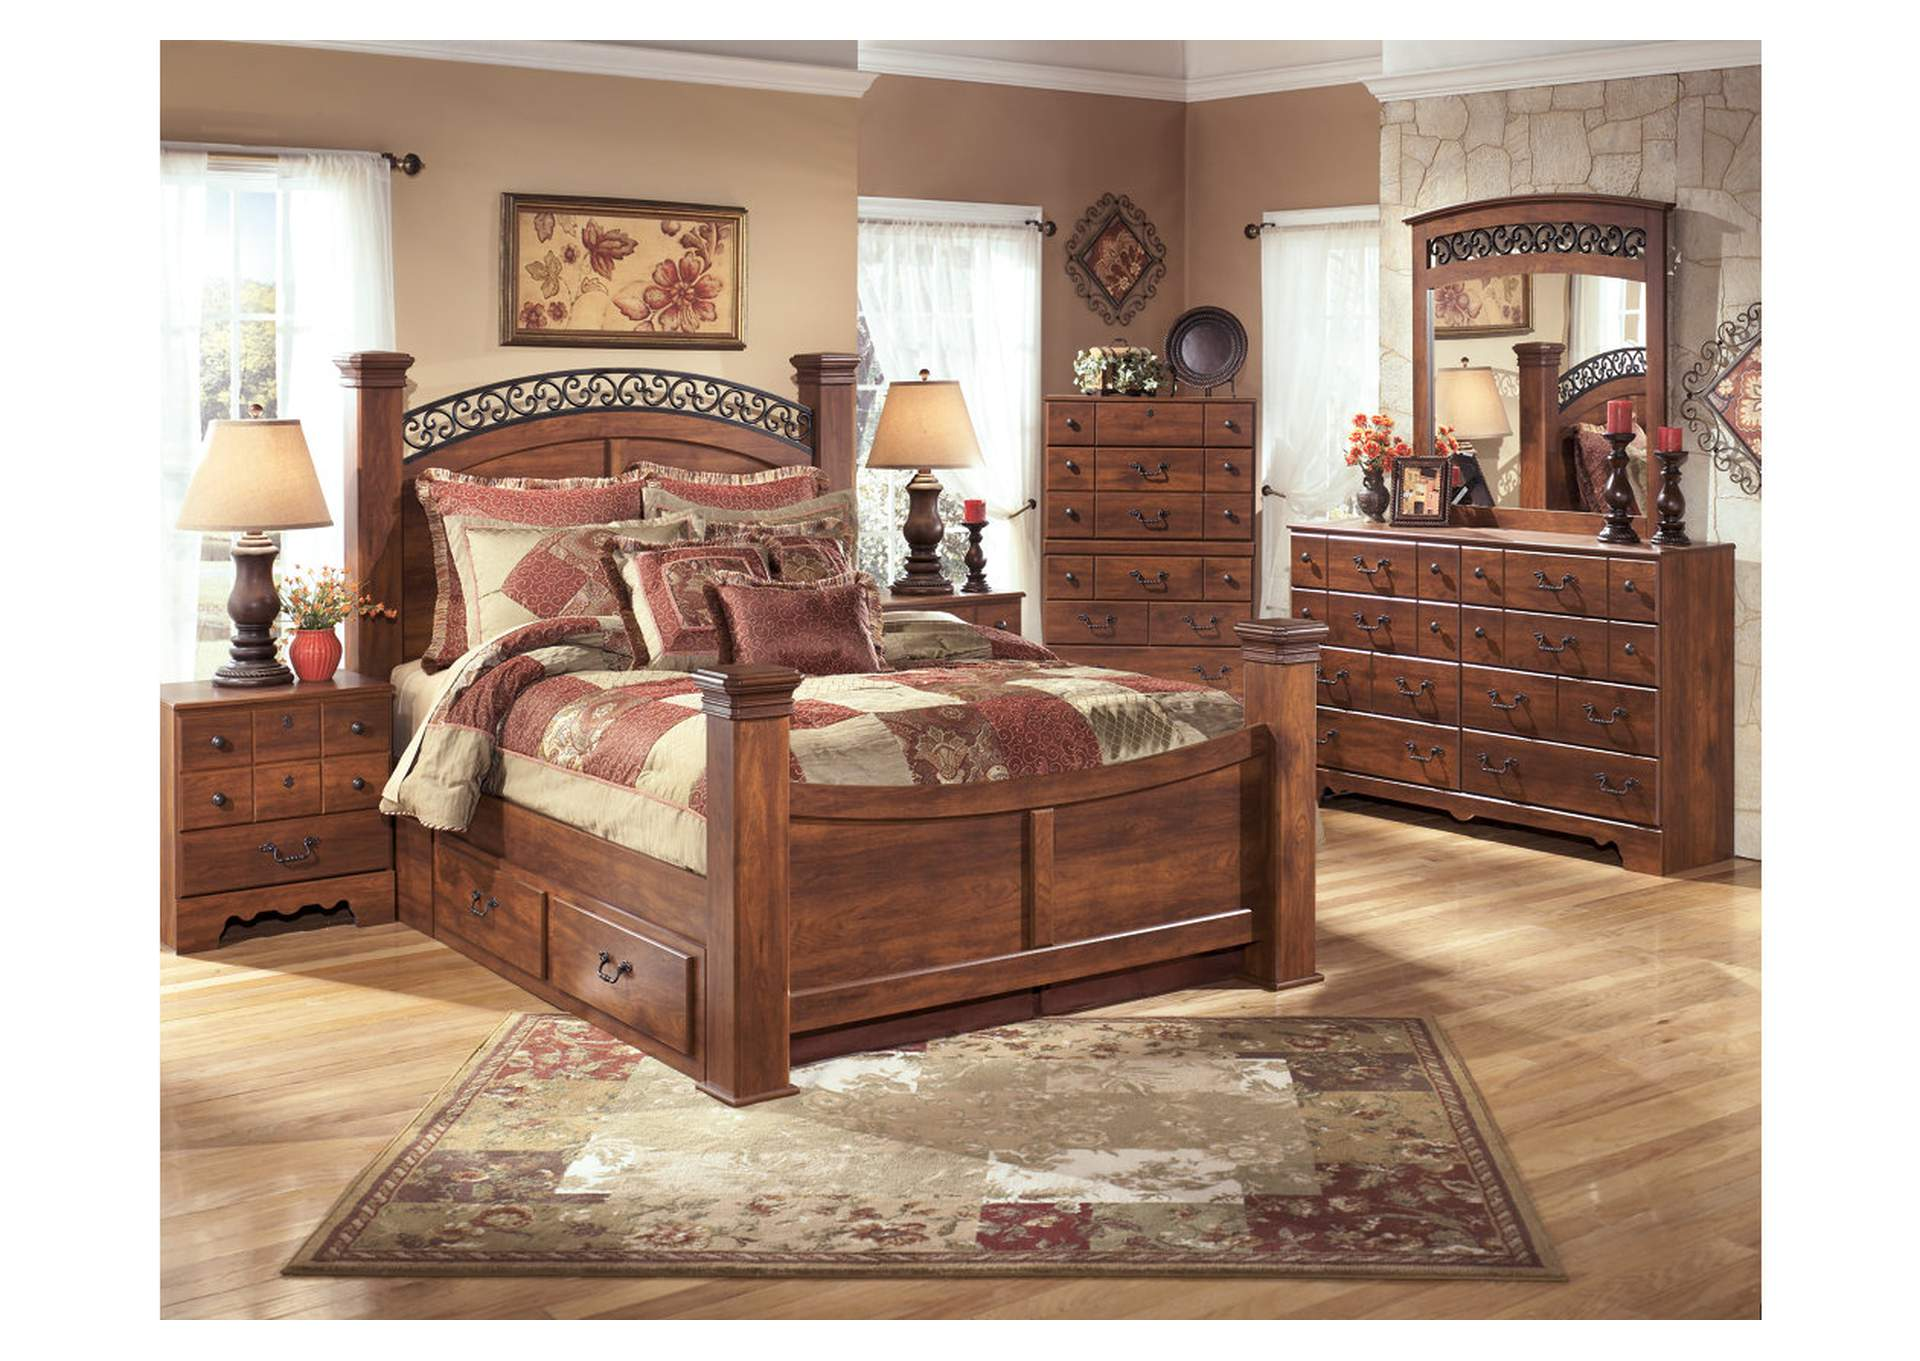 Timberline King Poster Storage Bed w/Dresser, Mirror & Drawer Chest,Signature Design By Ashley